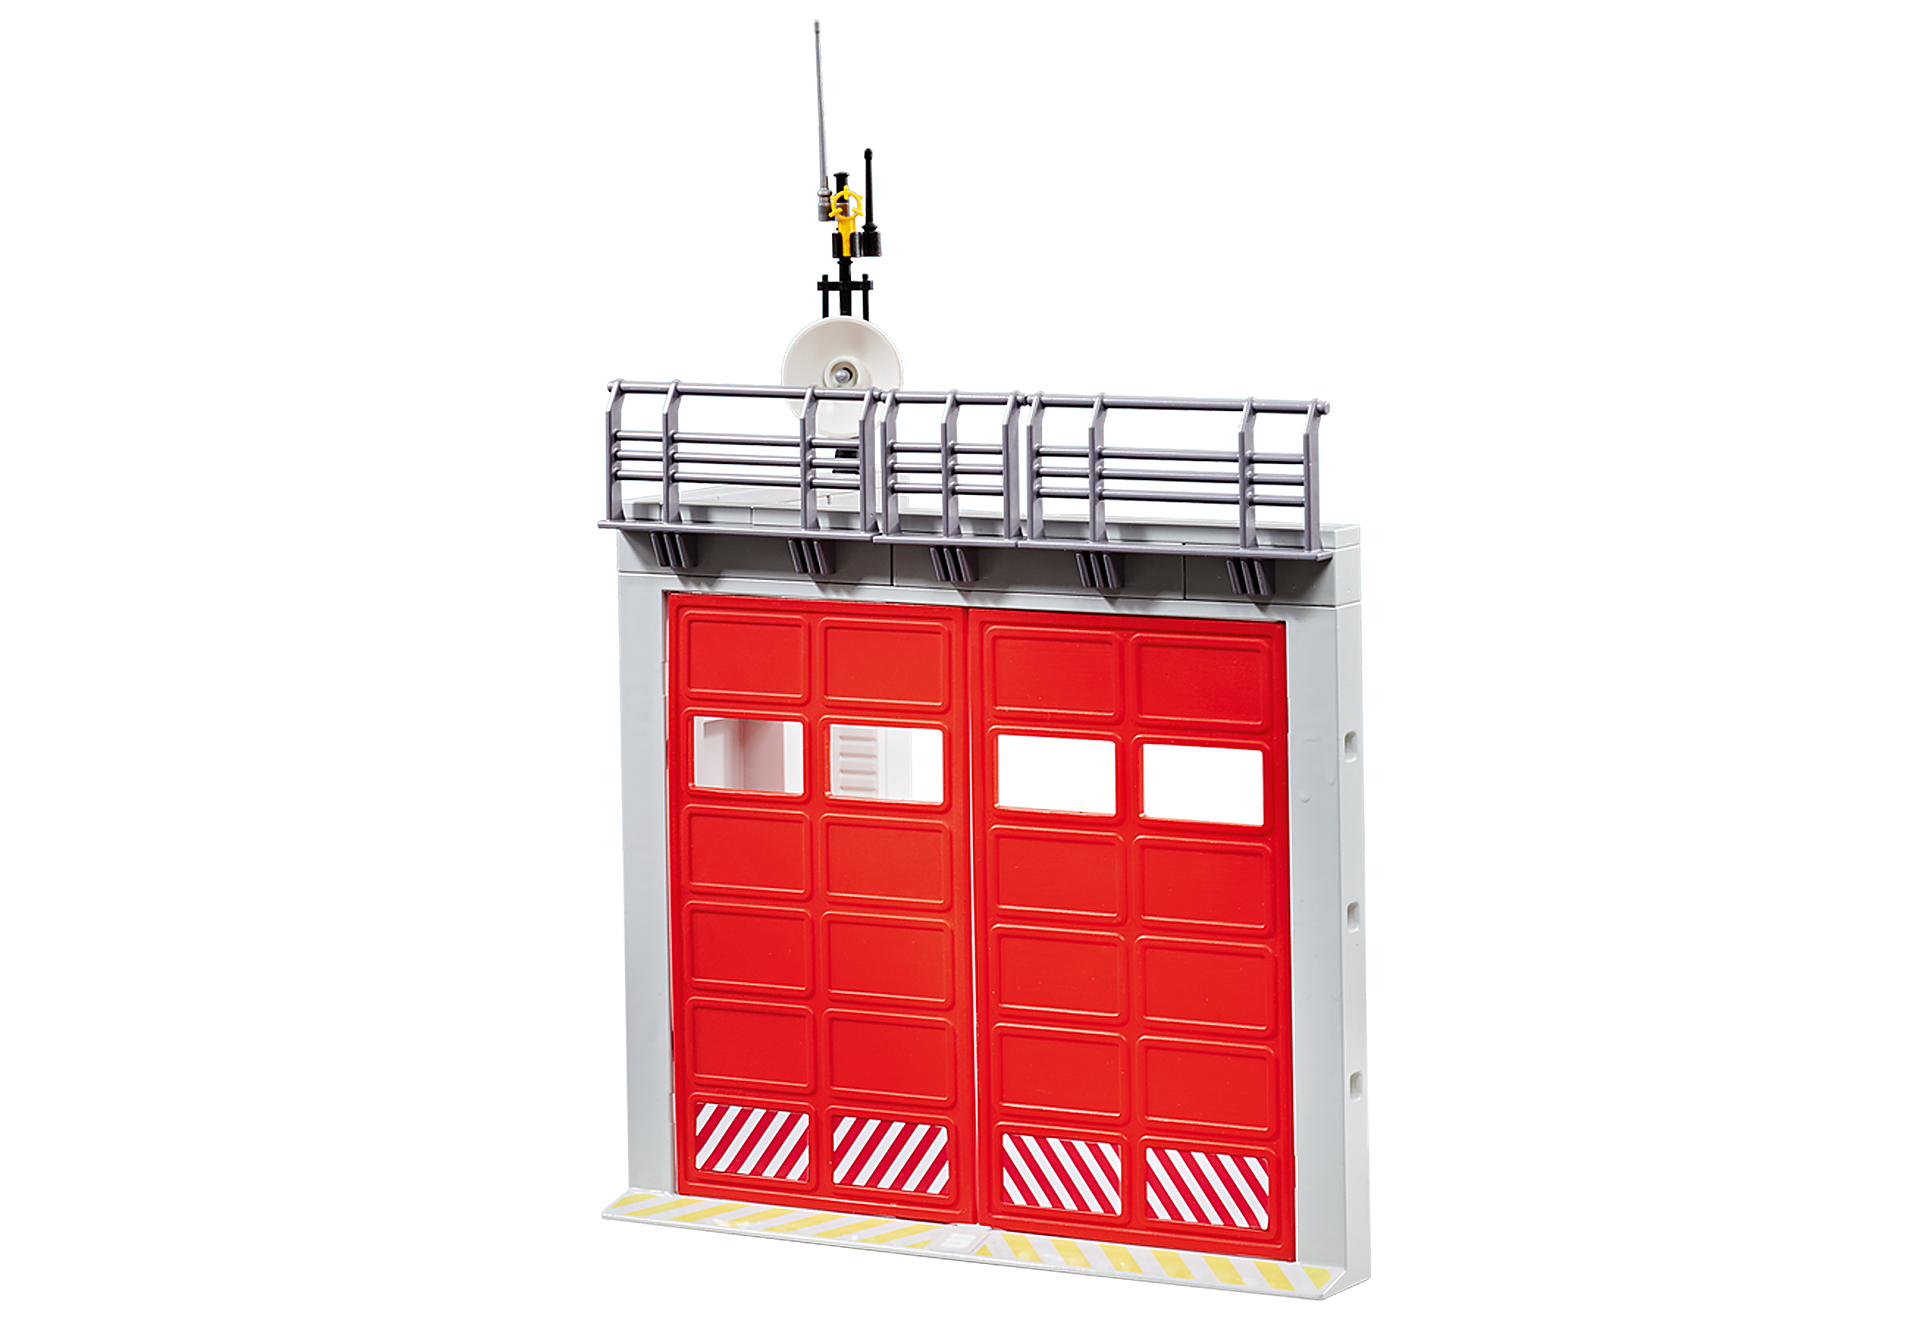 9803 Gate Extension for Fire Station with Alarm (9462) zoom image1